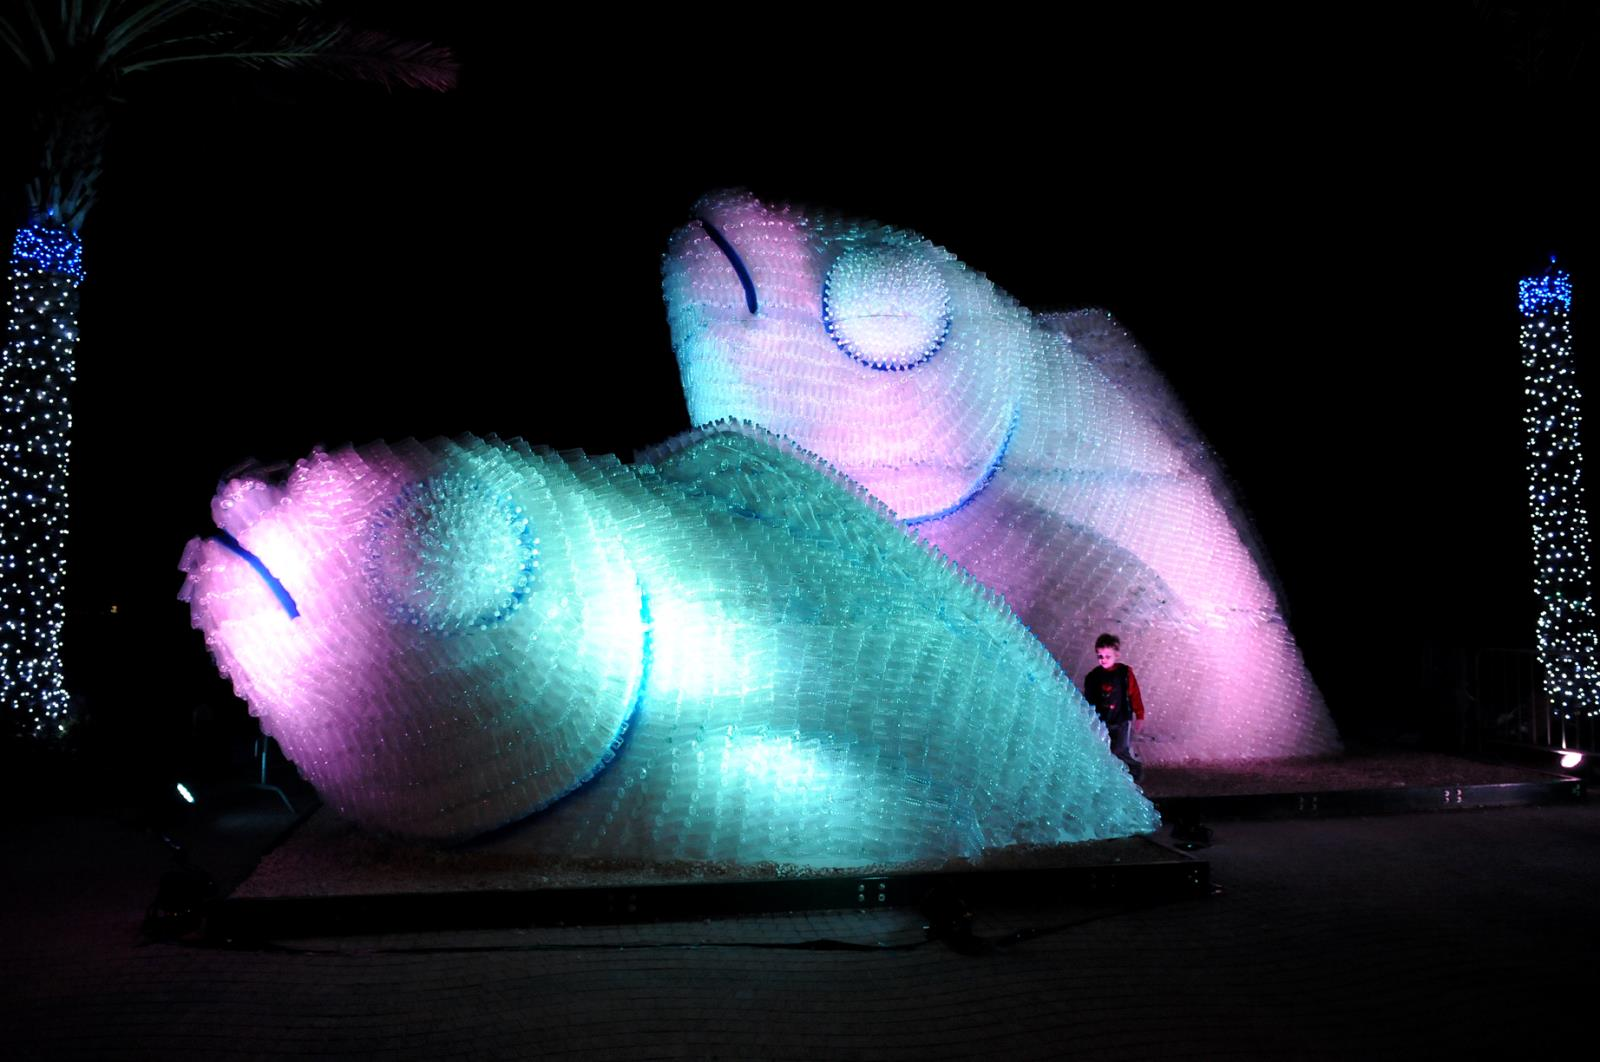 Night View of Upcycled Bottle Fish Sculpture